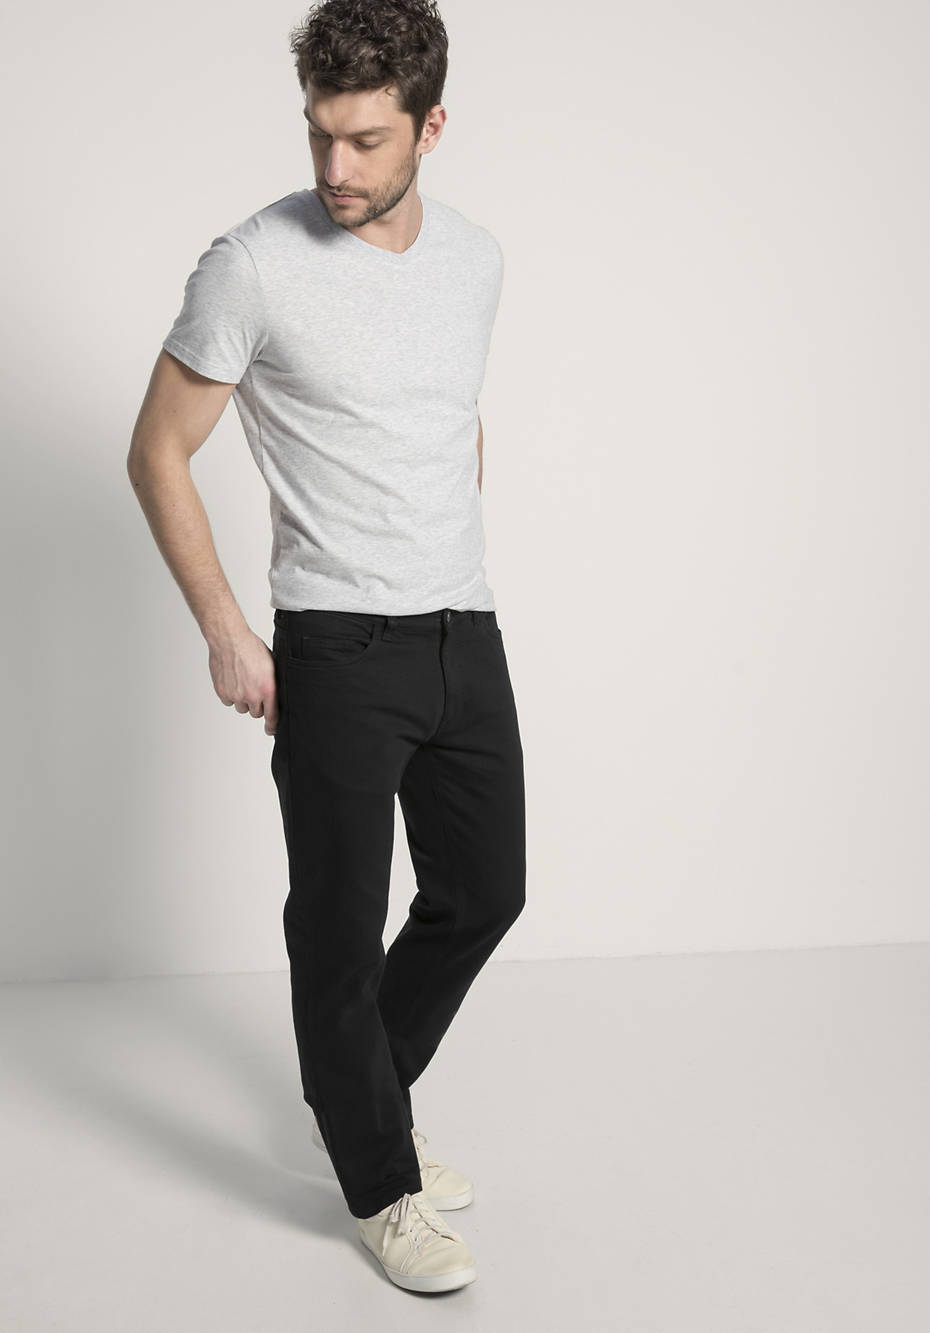 Herren Jeans Relaxed Fit aus Bio-Denim